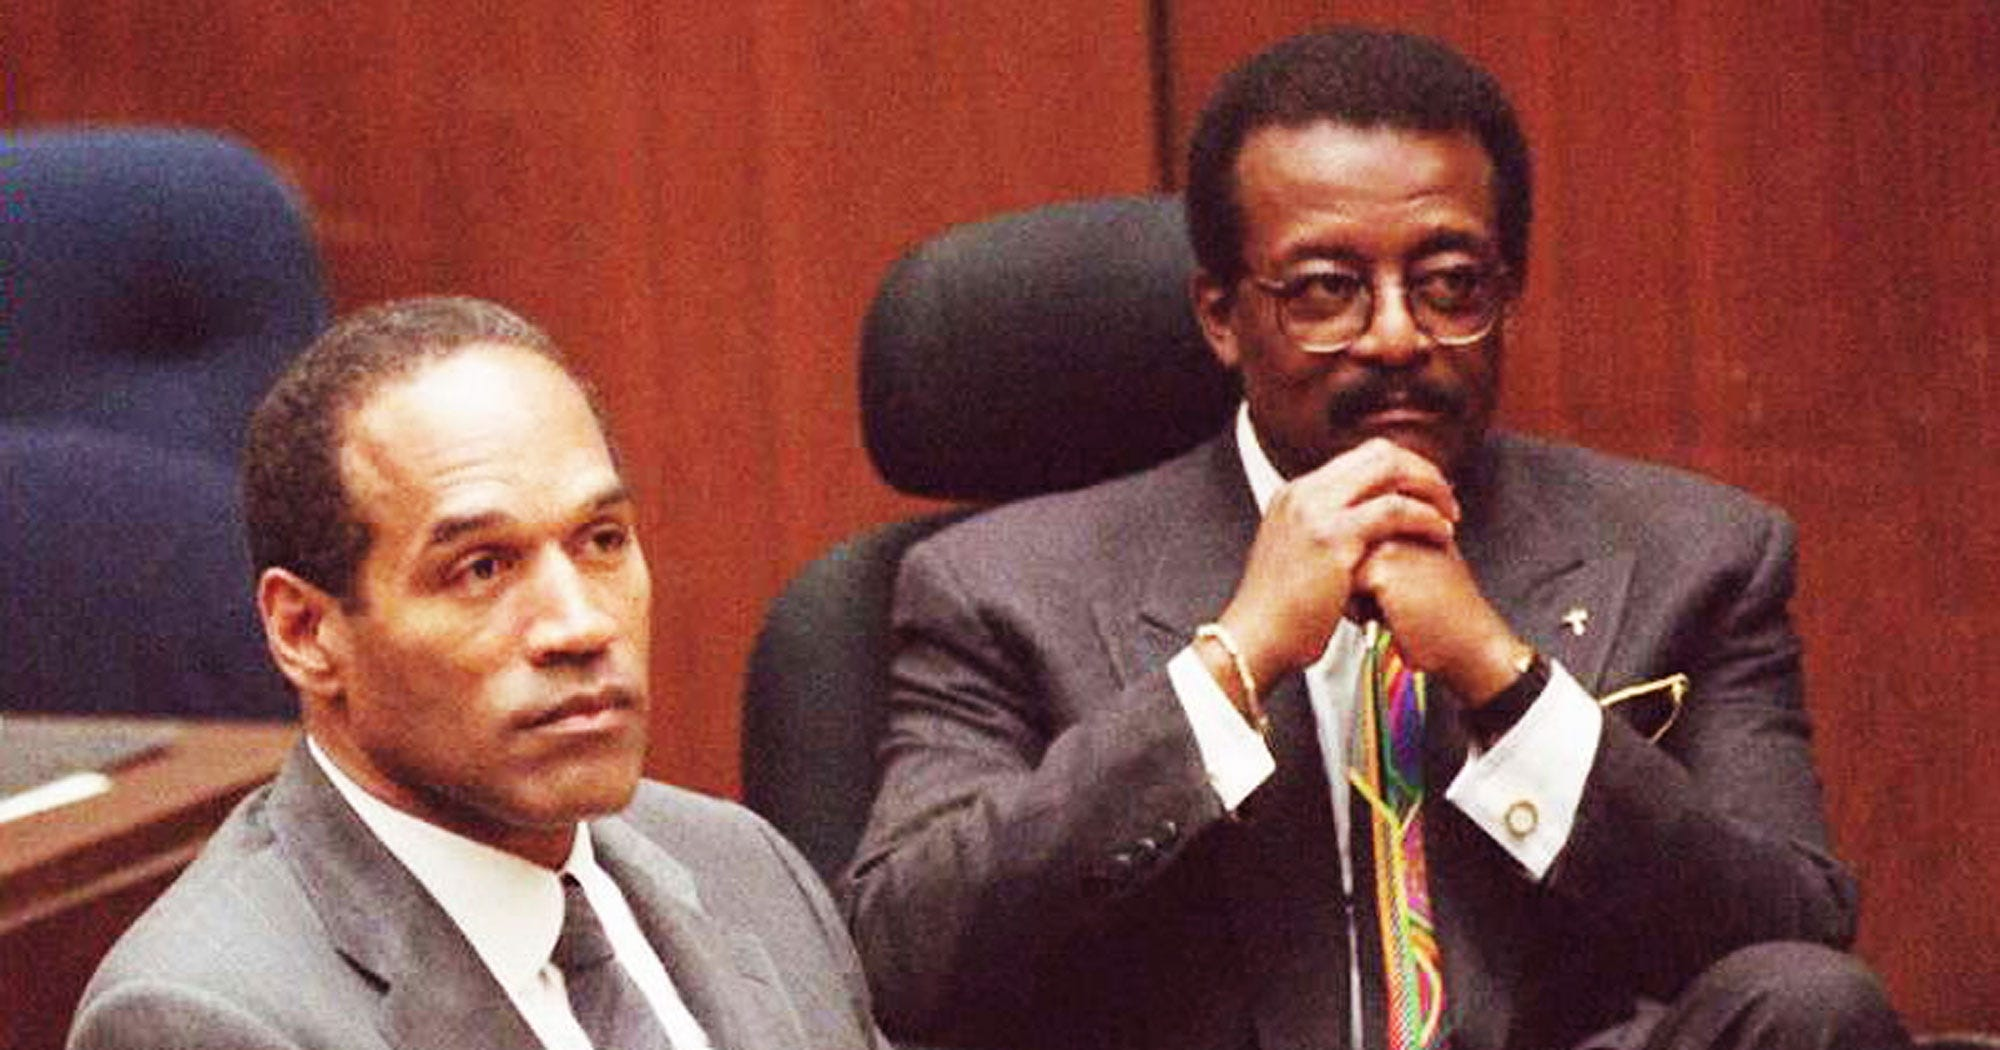 a history of the oj simpson trial in the united states Berger v united states, 295 us 78 (1935)  cial aspects of oj simpson  case verdict, us  amicus curiae adopts the facts and procedural history set.